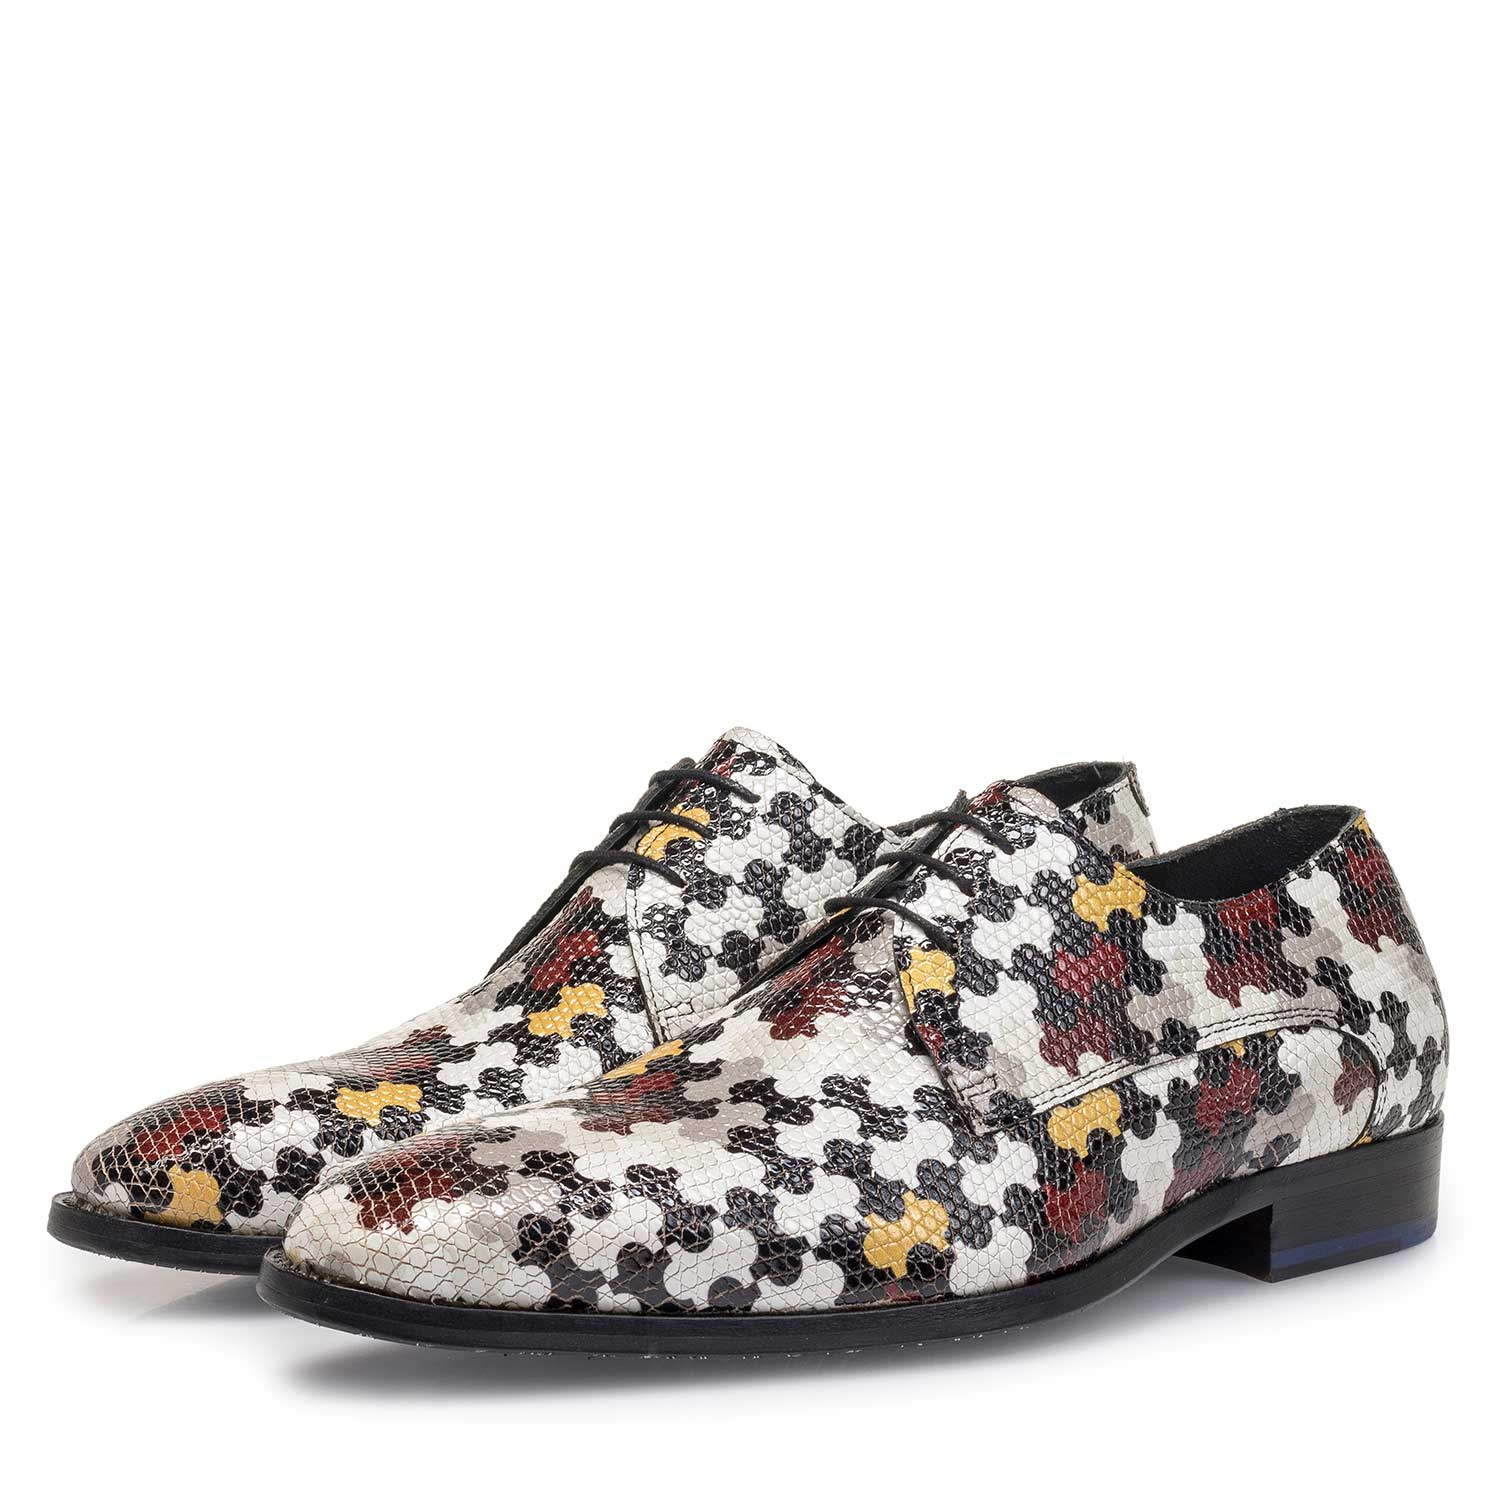 18095/02 - White calf leather lace shoe with multi-coloured print